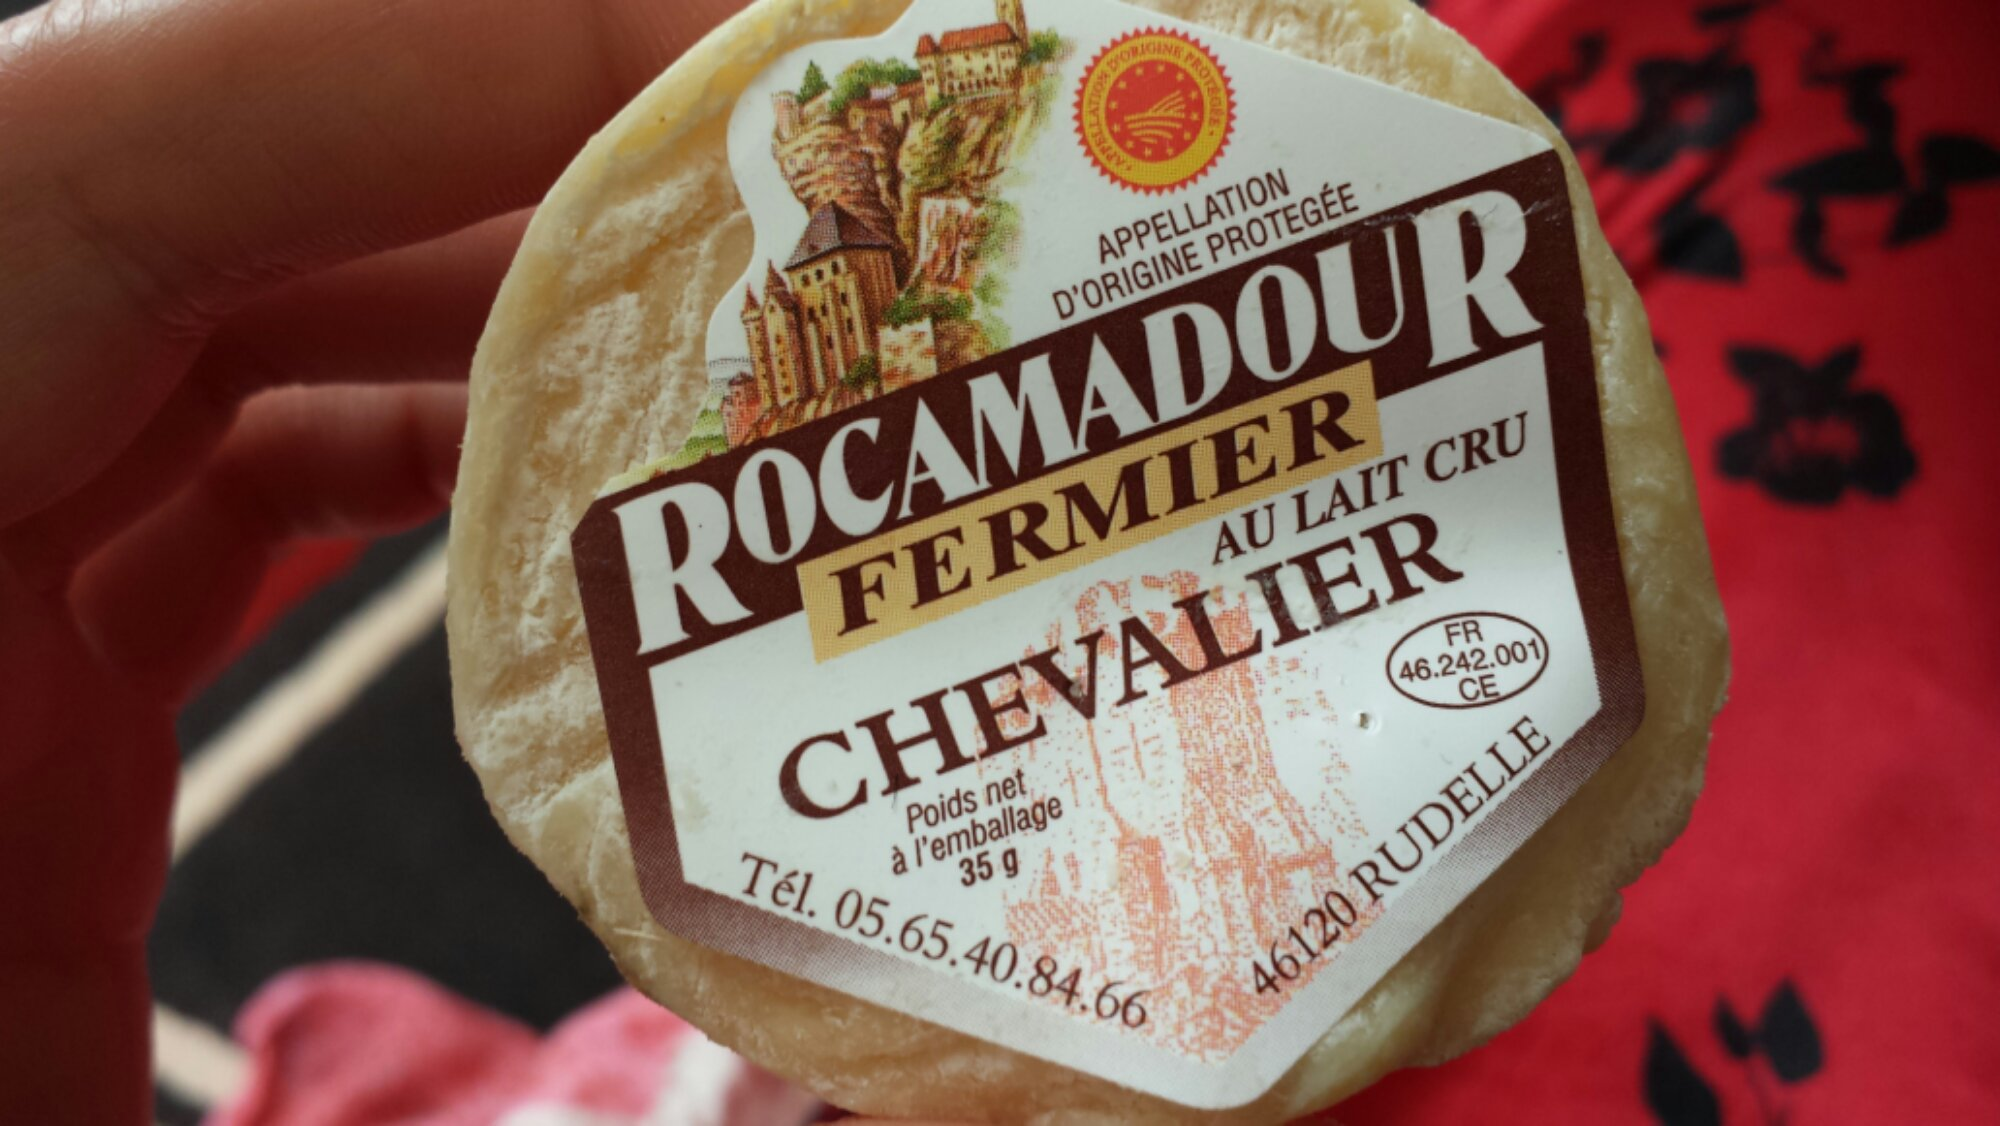 Rocamadour cheese